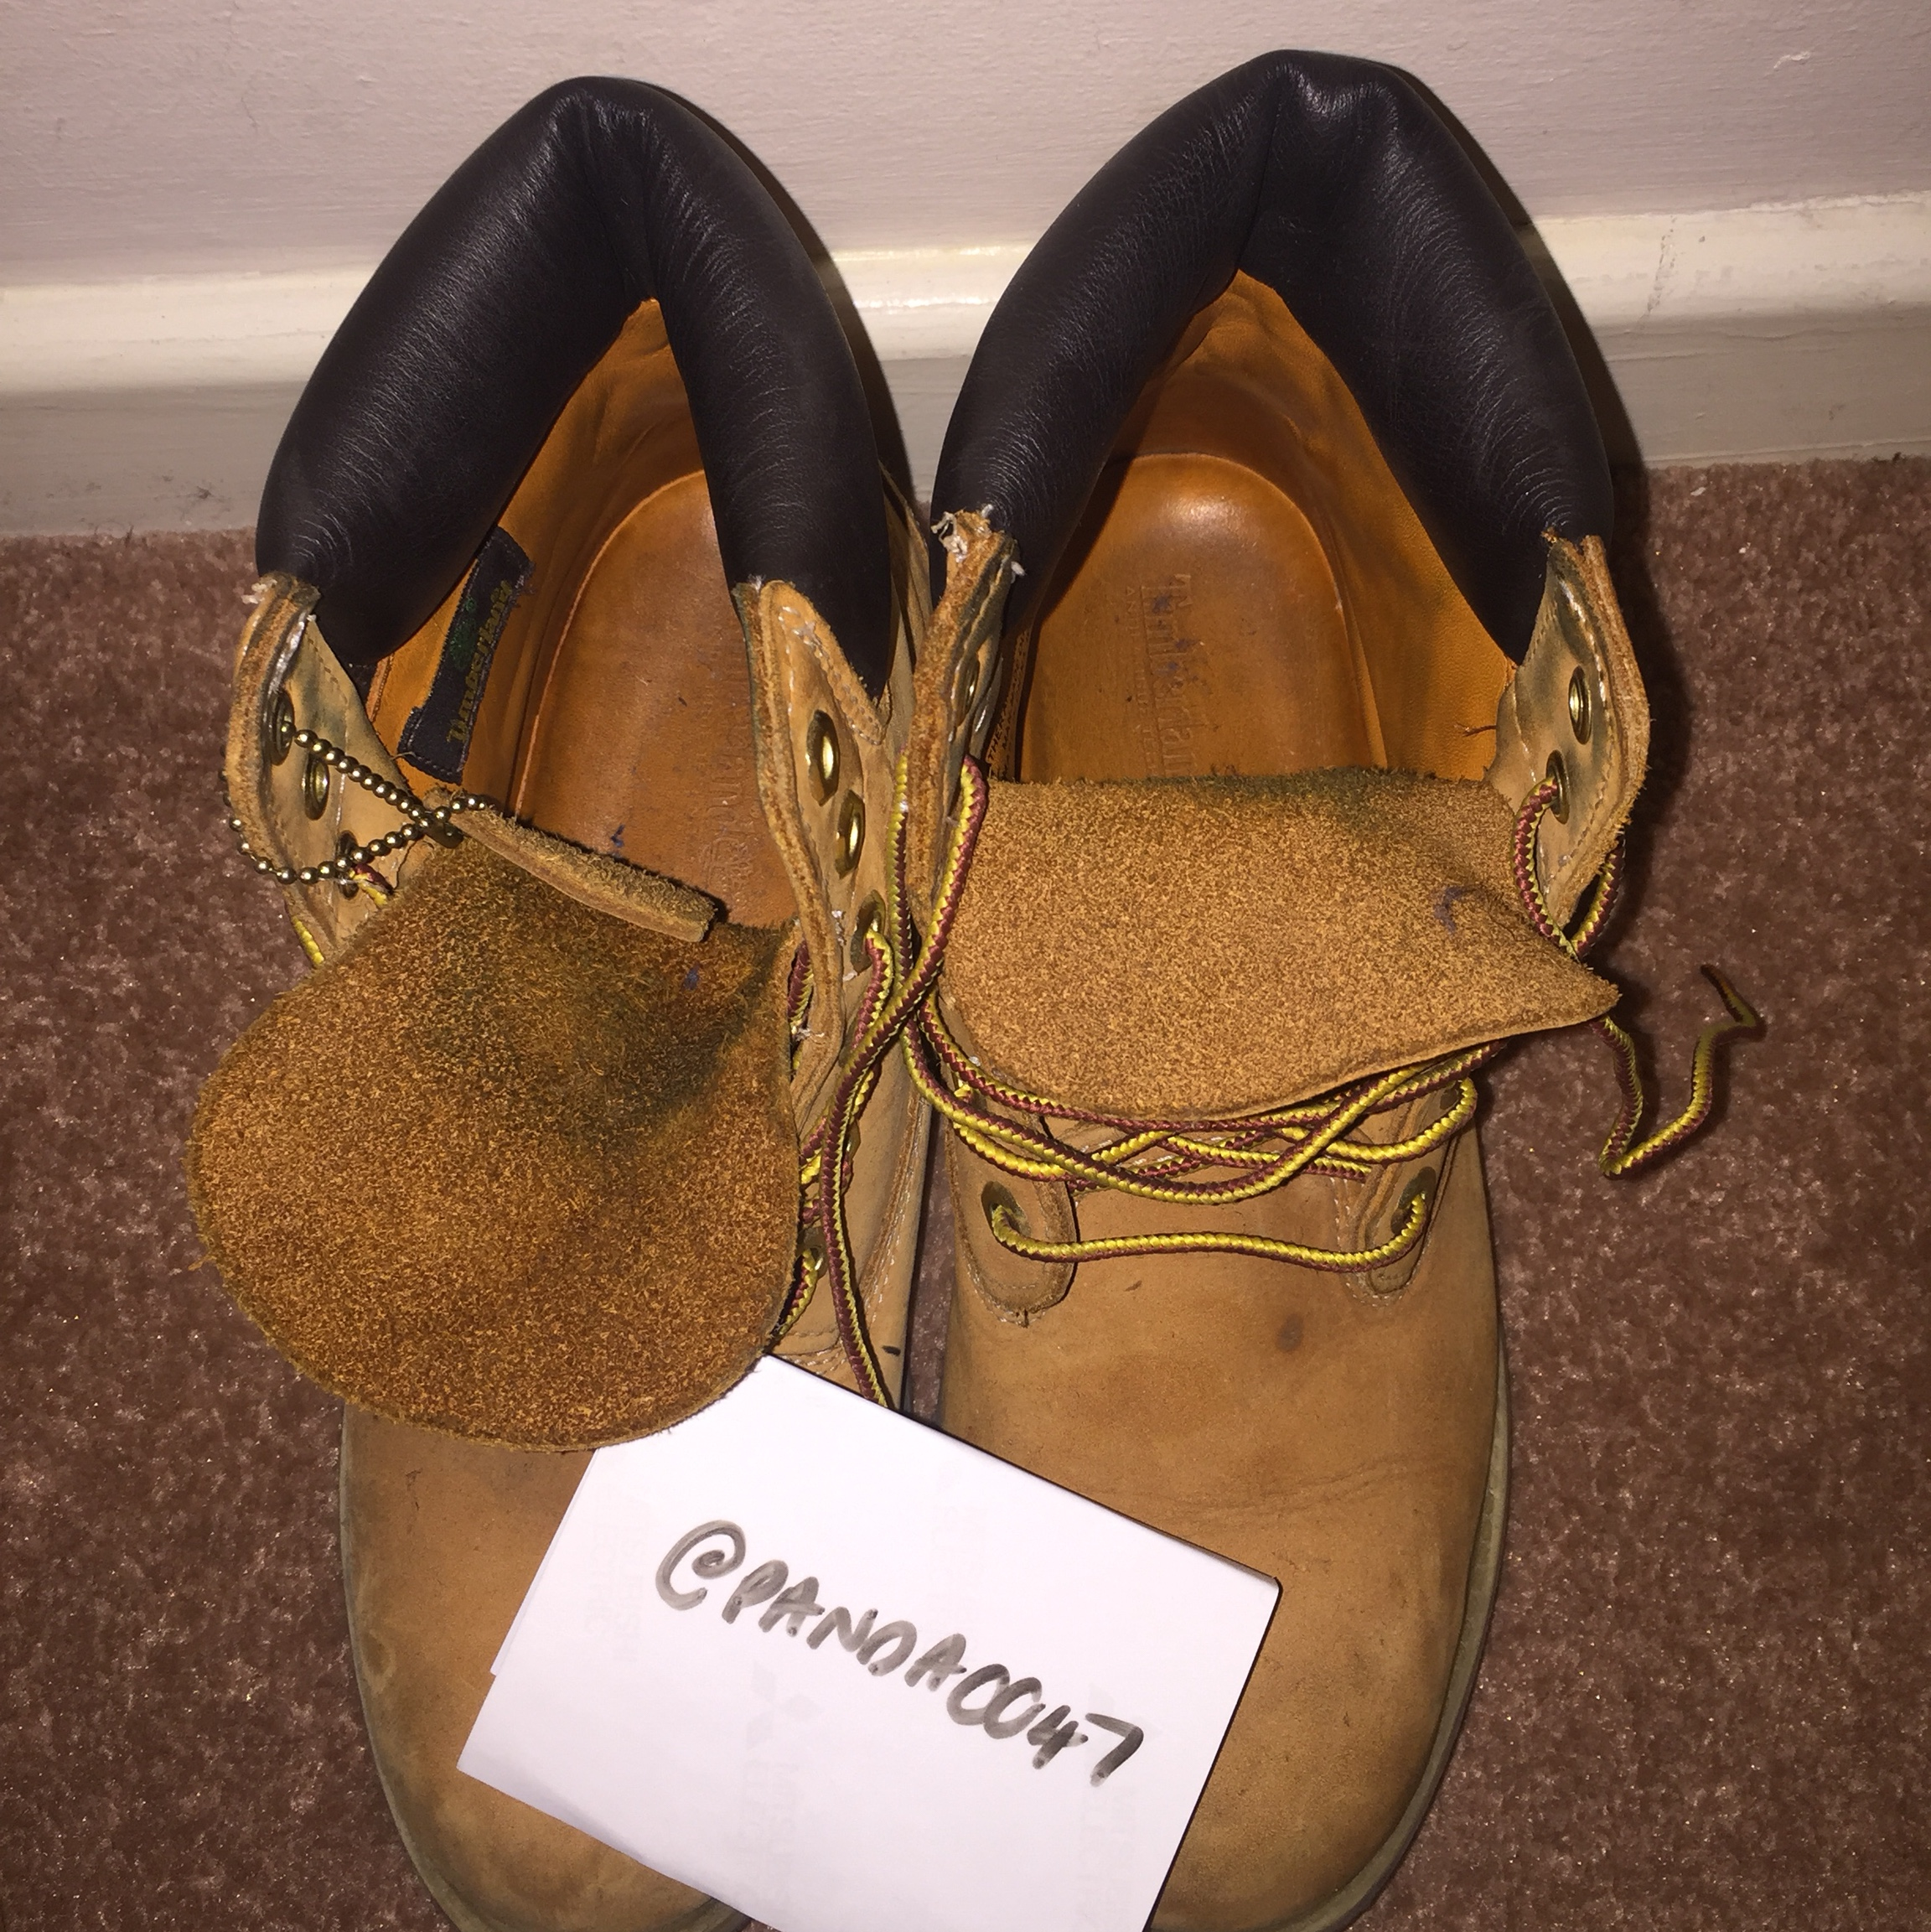 Timberland Old School Shoe, WORN. (OPEN TO OFFERS